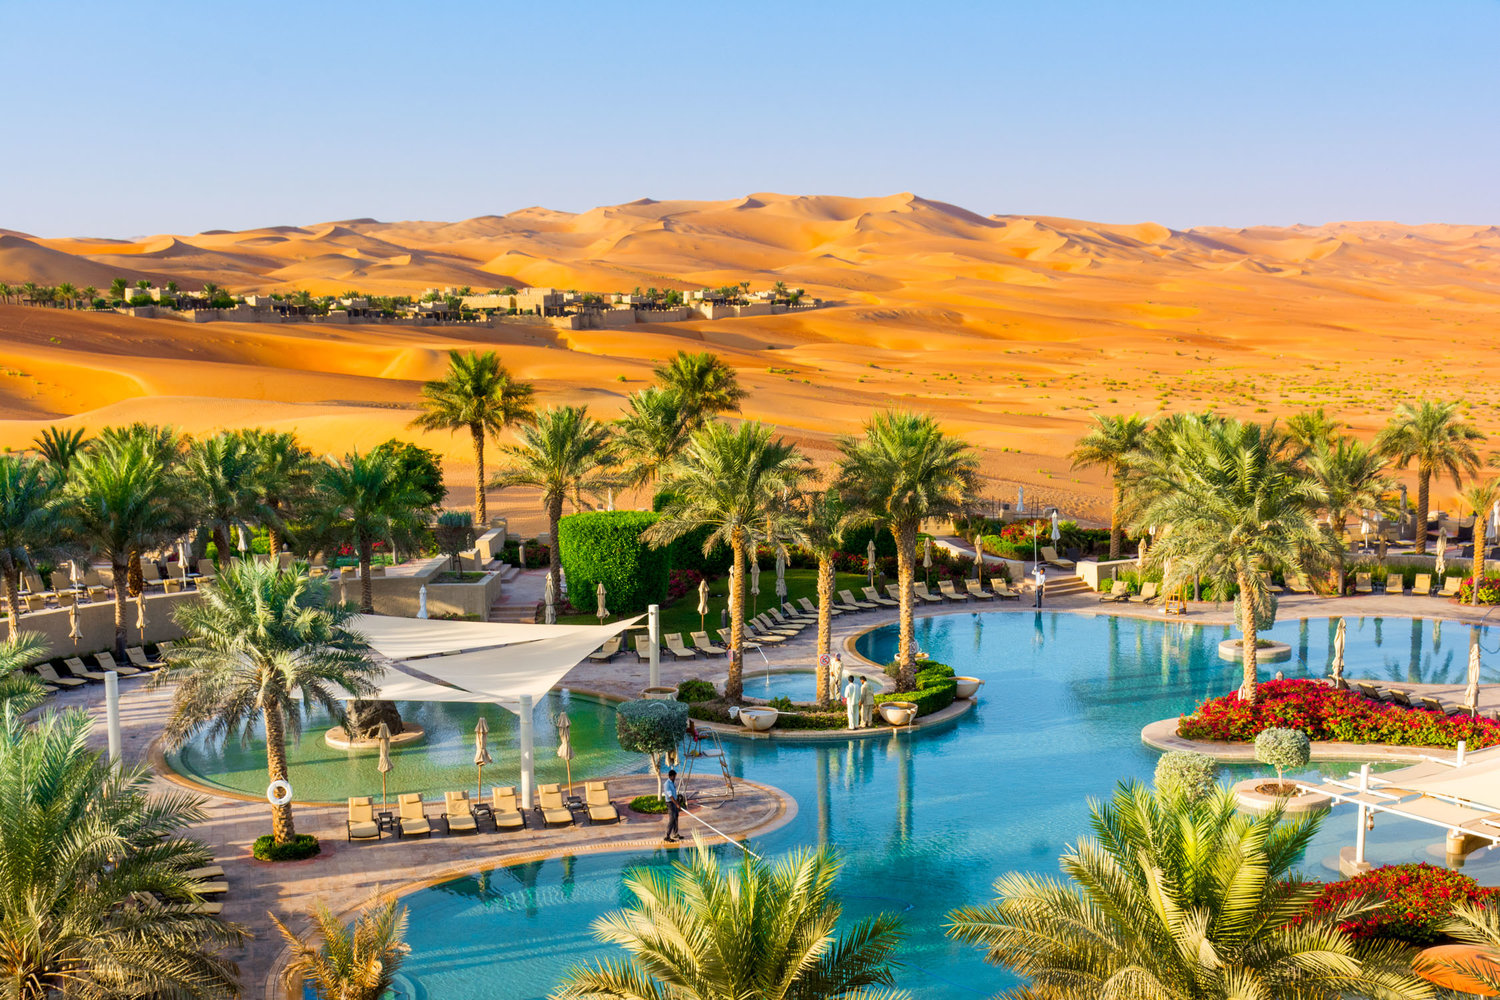 Yas Island With Desert Resort And Mountain Hotel  06 Nights / 07 Days